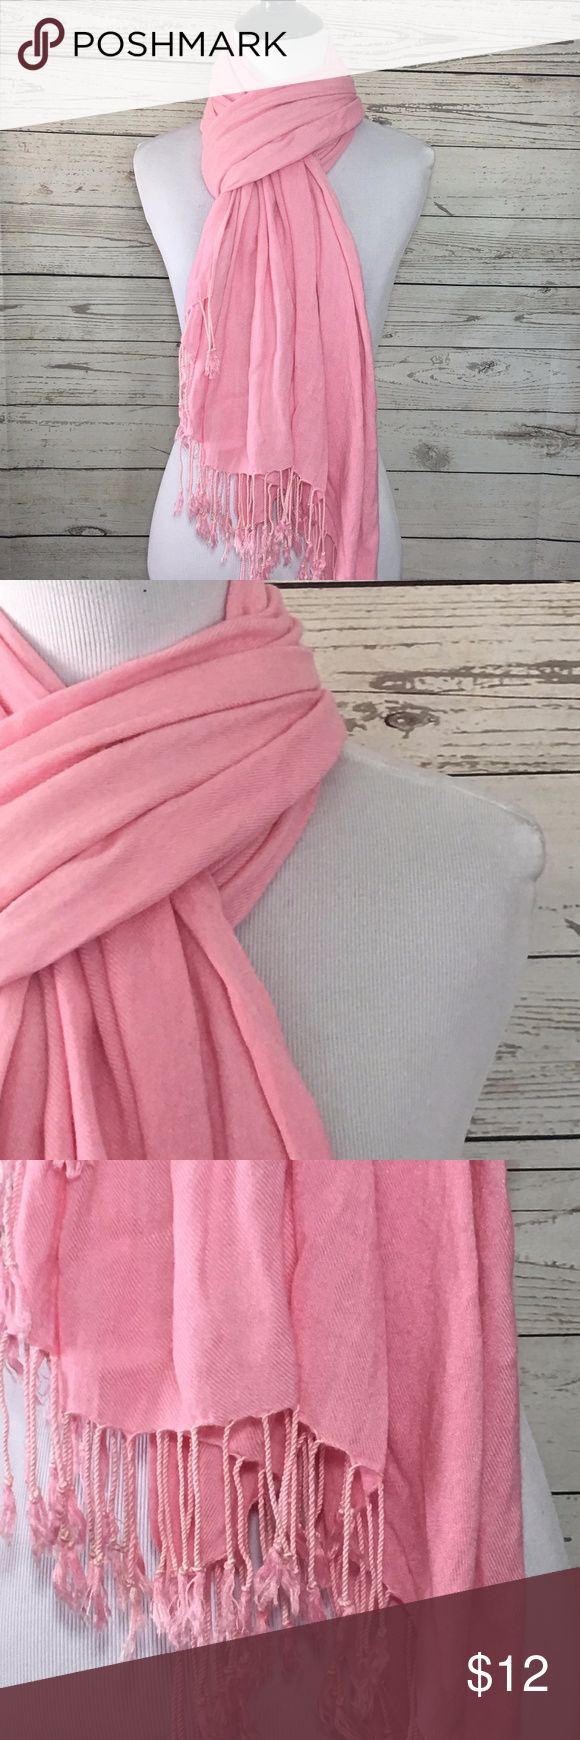 Pink Scarf with Tassles This pink scarf is really soft and has tassles It was never worn and was purchased at a boutique Measurements:  27x72 Accessories Scarves & Wraps